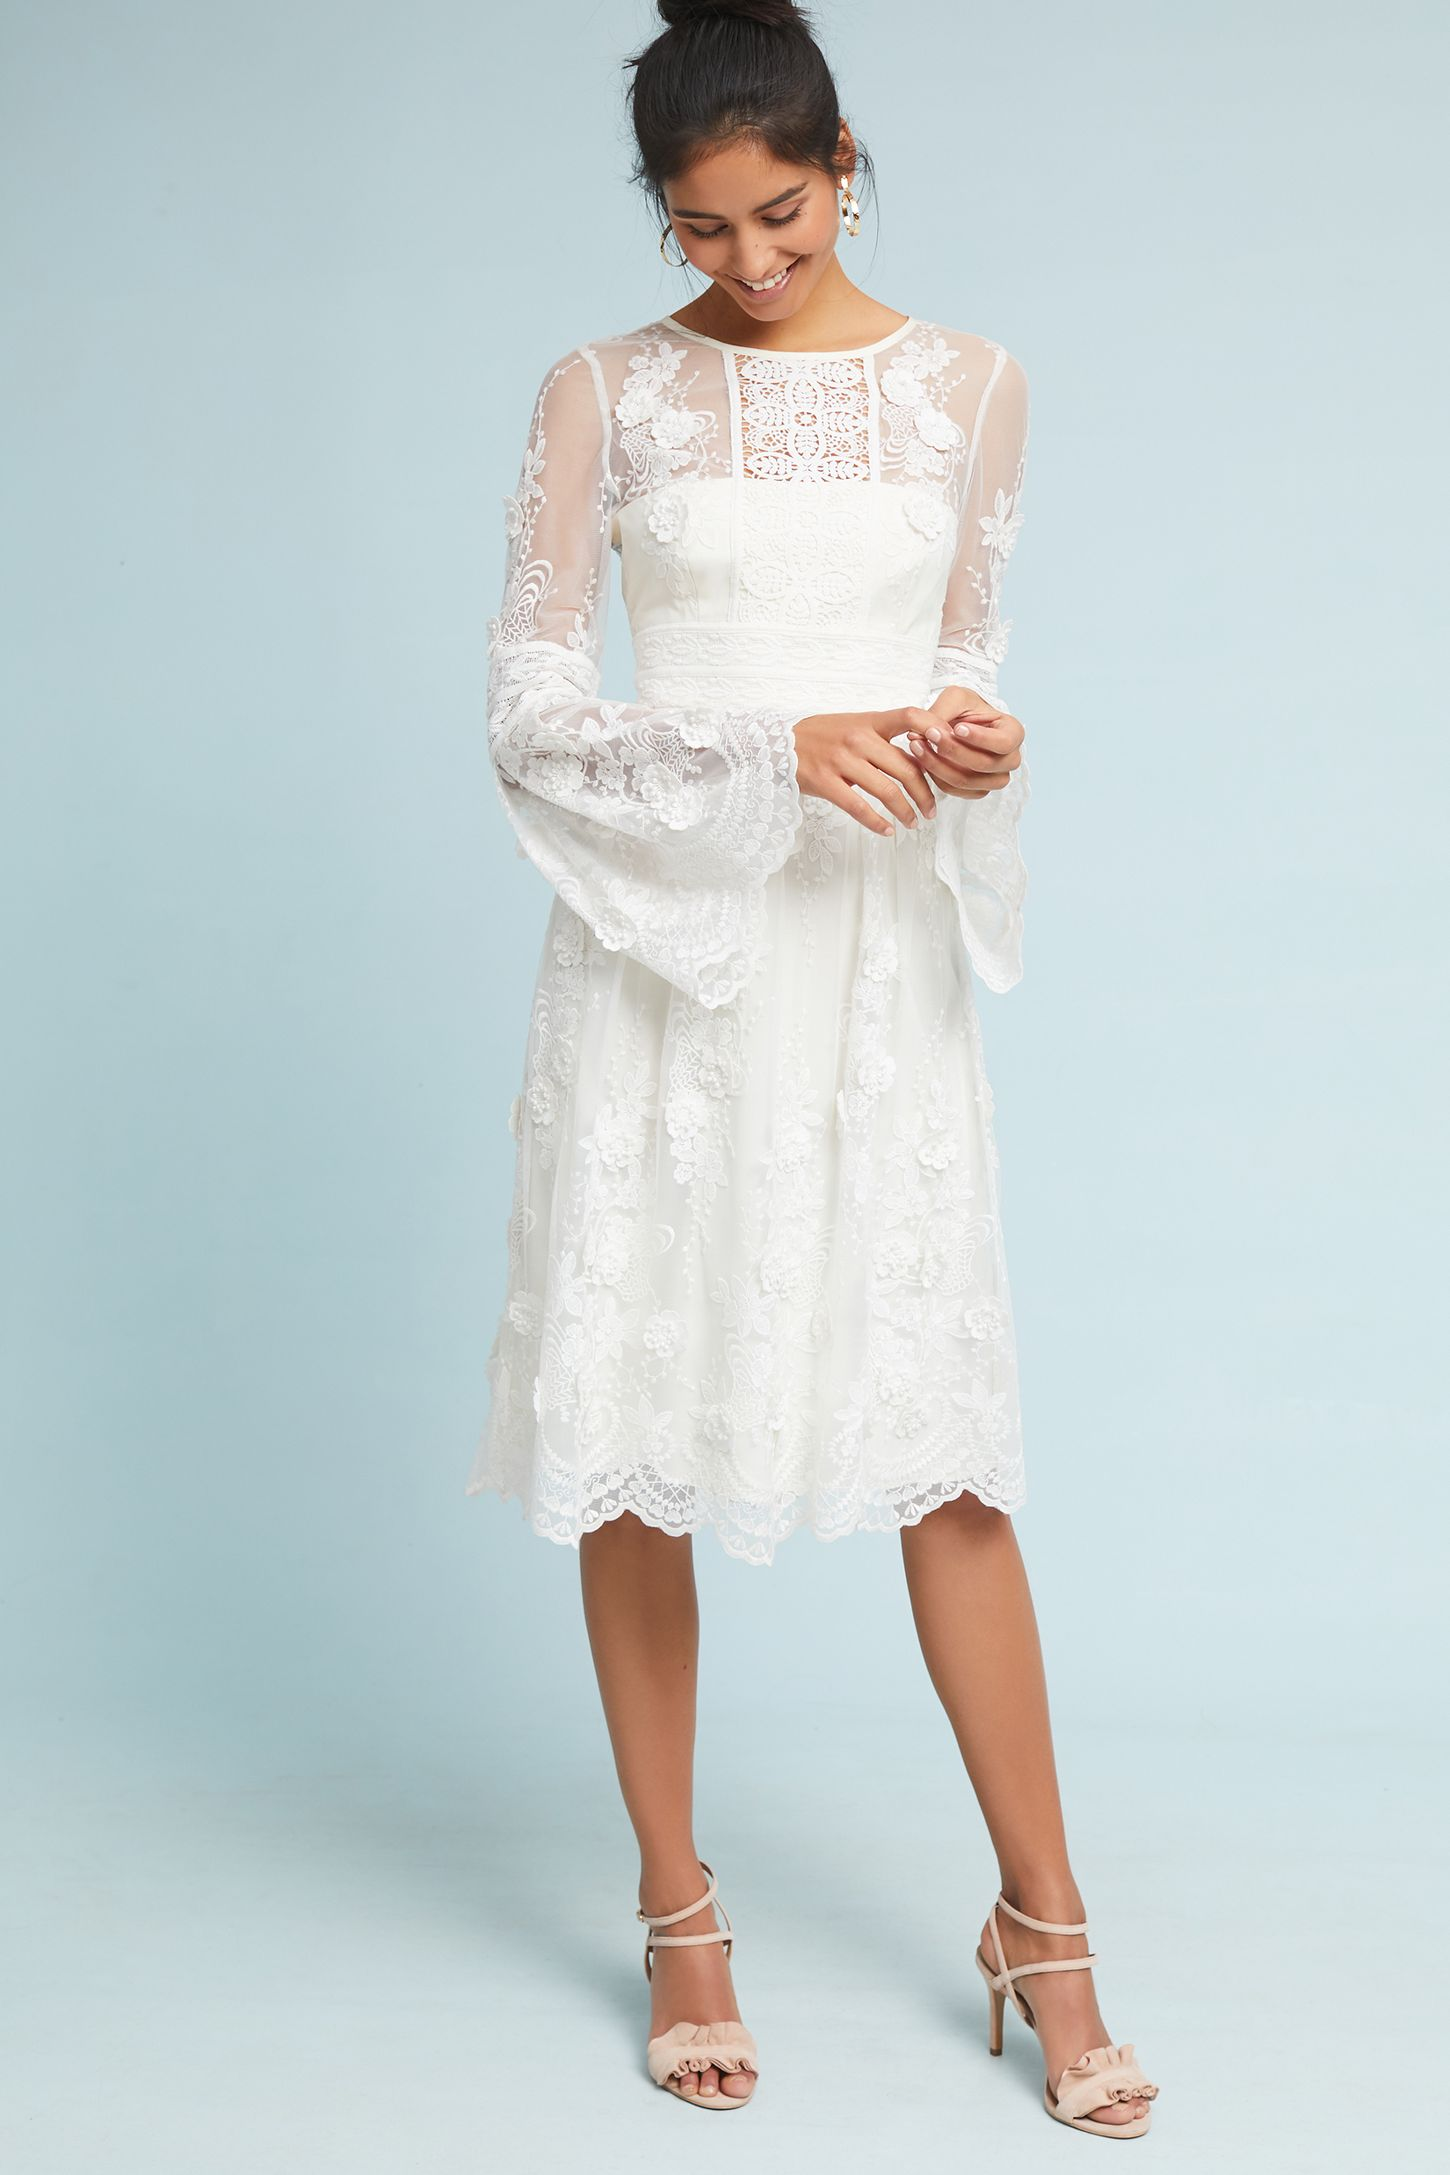 ML Monique Lhuillier Mixed Lace Dress | Anthropologie